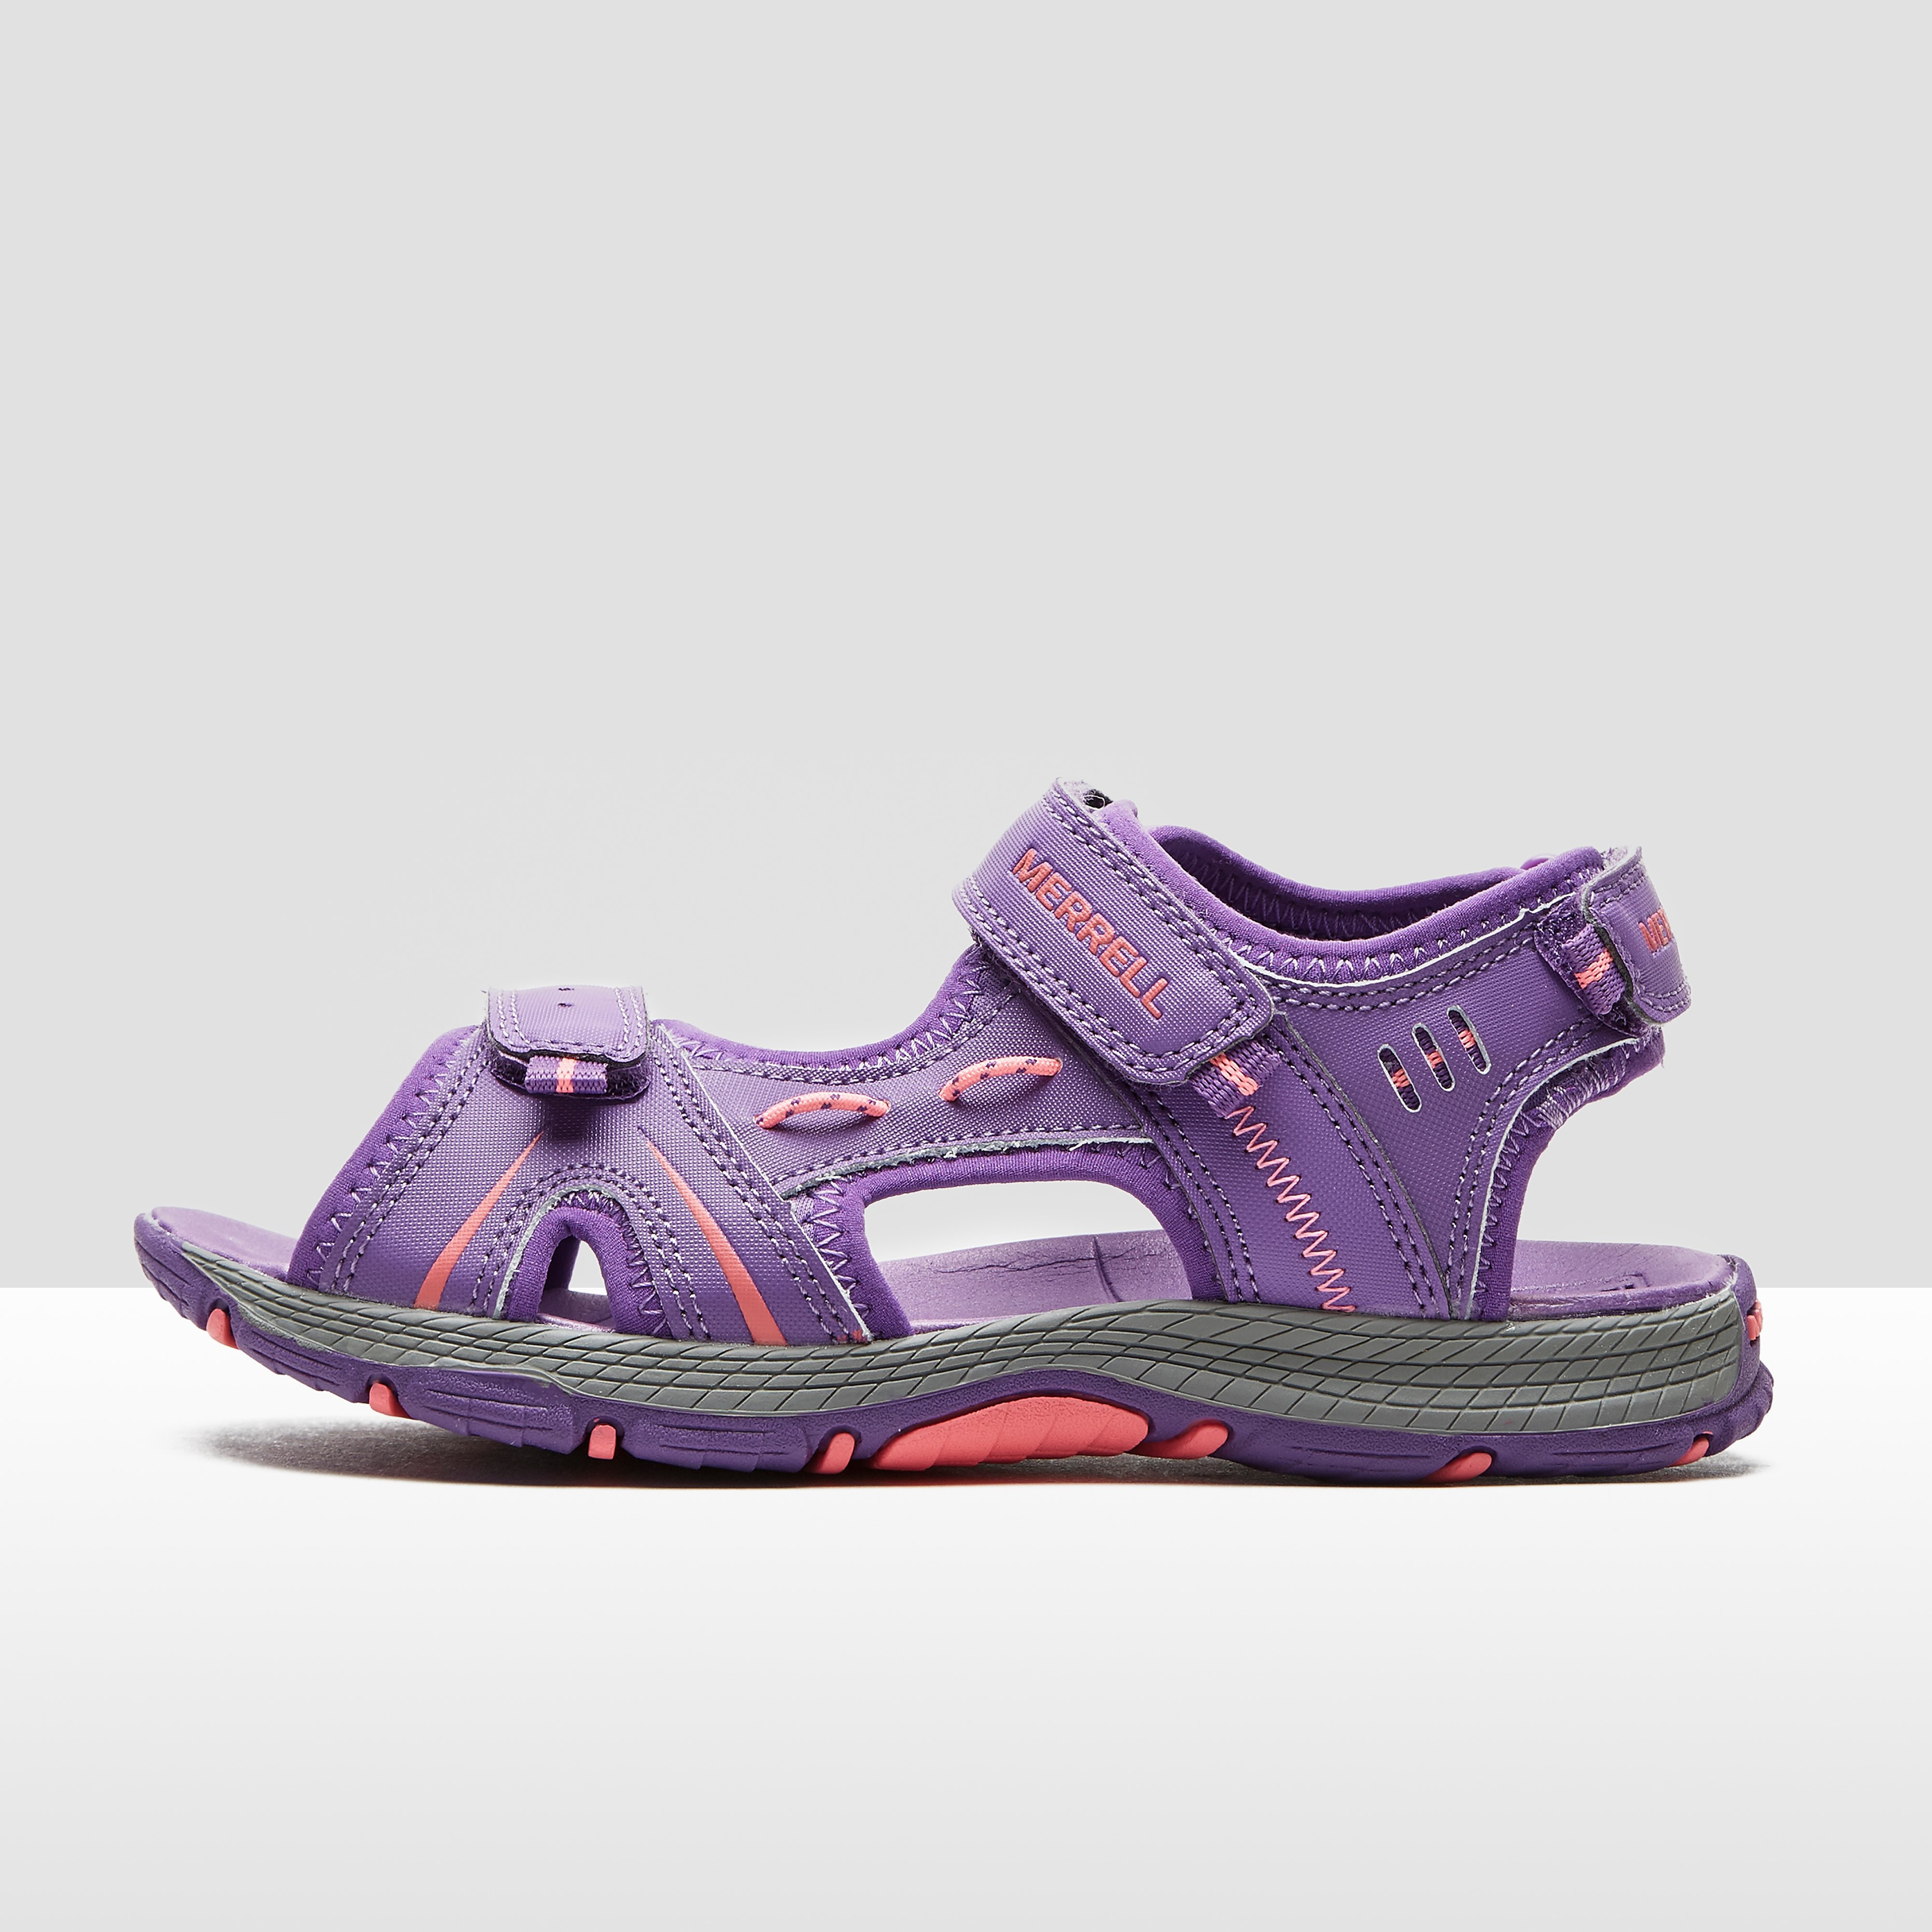 Merrell Panther Girl's Sandals